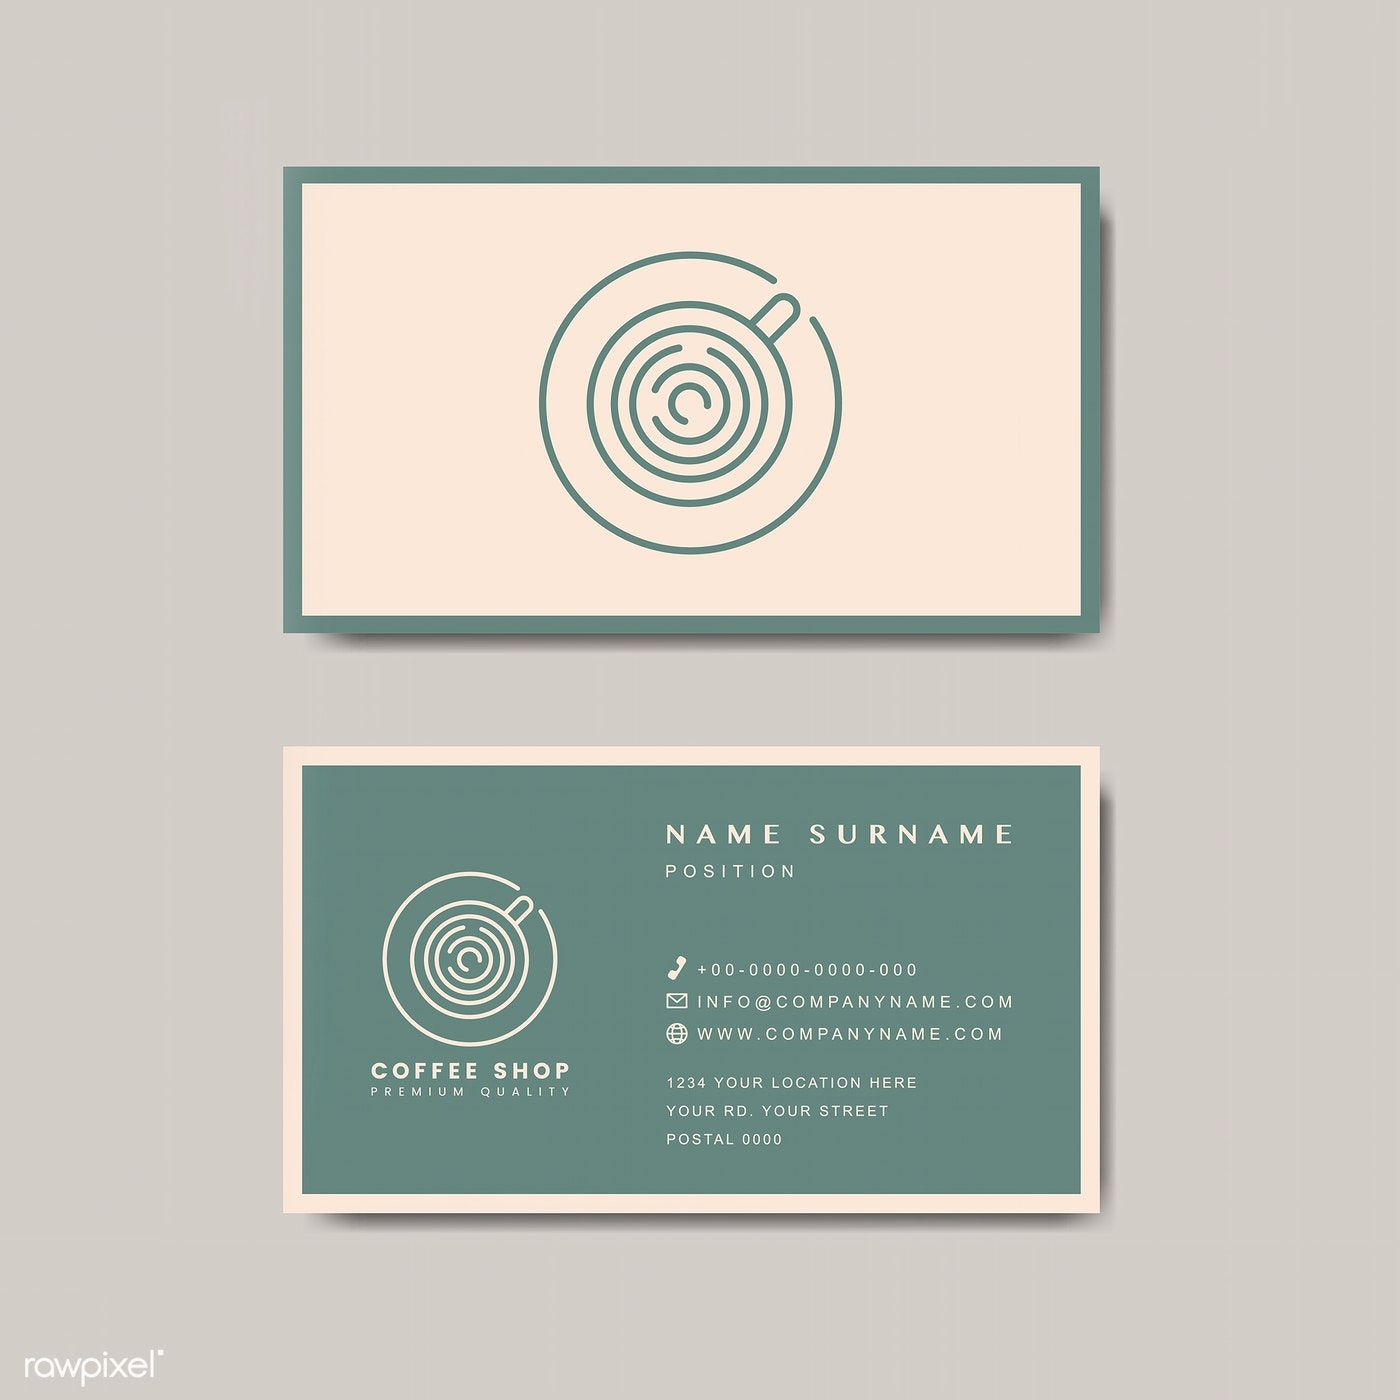 Coffee Shop Business Card Template Vector Free Image By Rawpixel